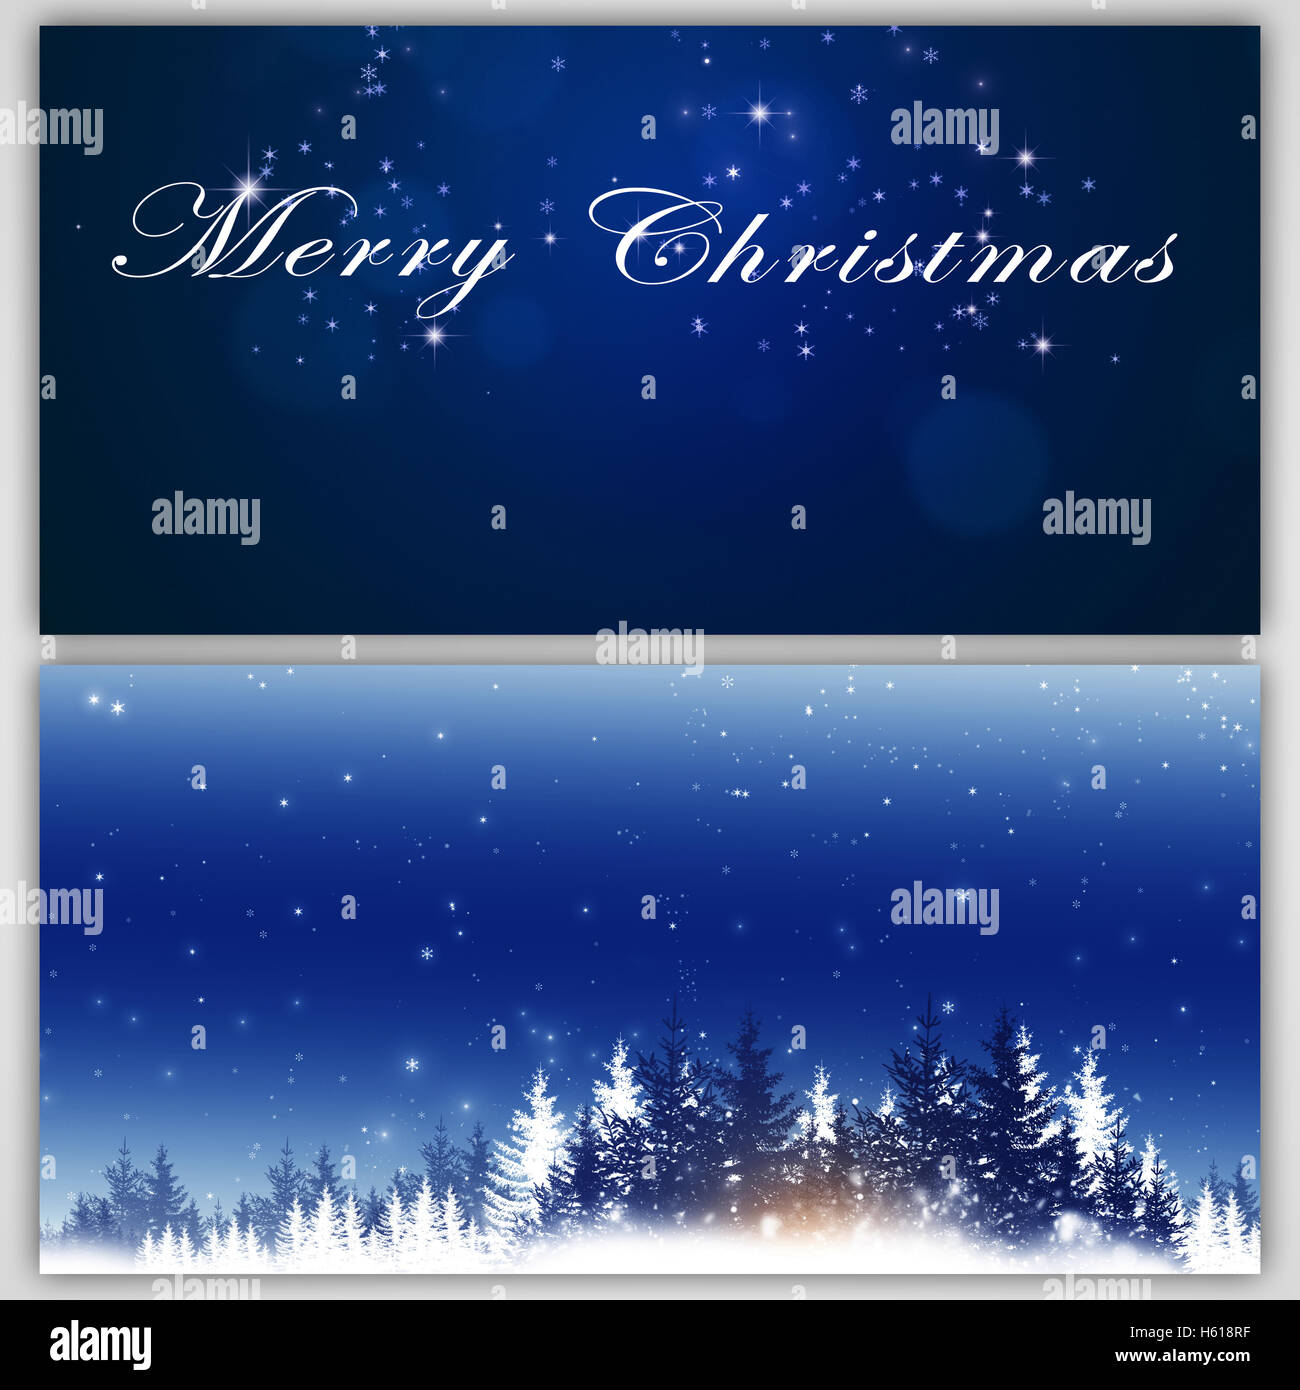 Winter holiday banners for christmas and new year greeting cards winter holiday banners for christmas and new year greeting cards kristyandbryce Images